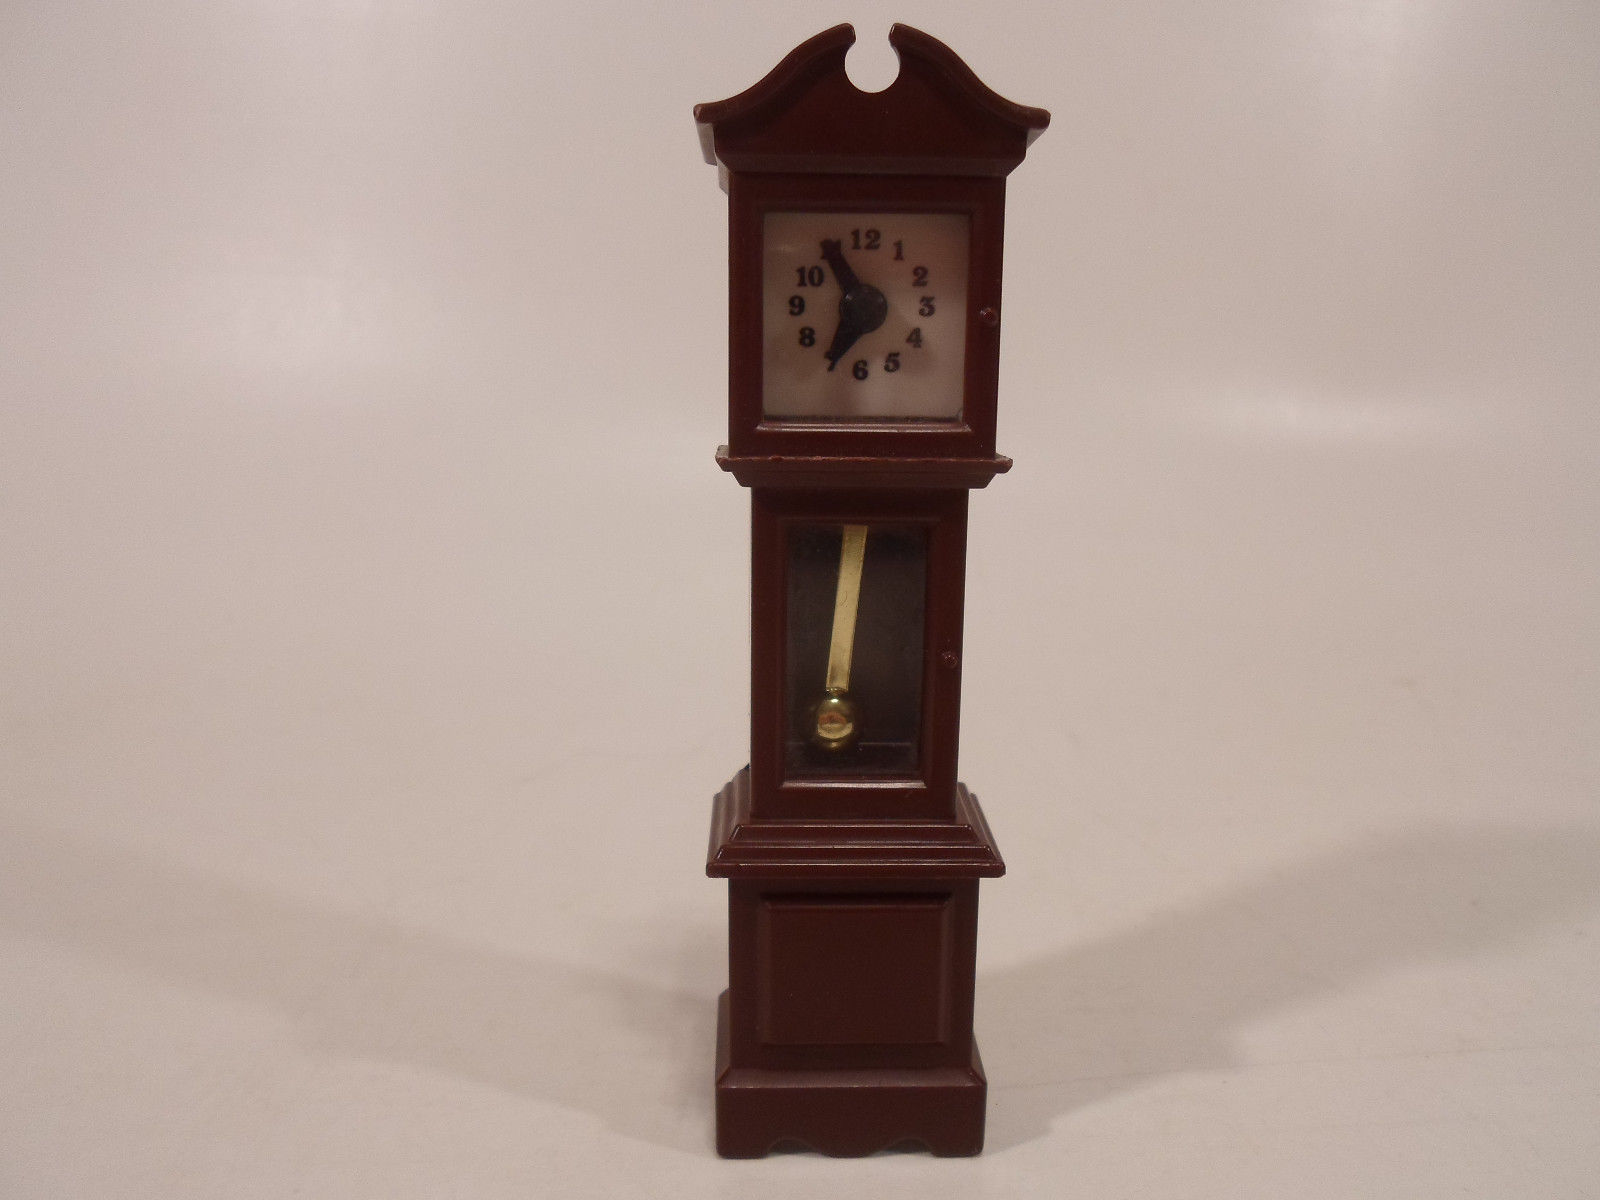 Primary image for  Vintage Fisher Price Little People Play Family House Toy Grandfather Clock